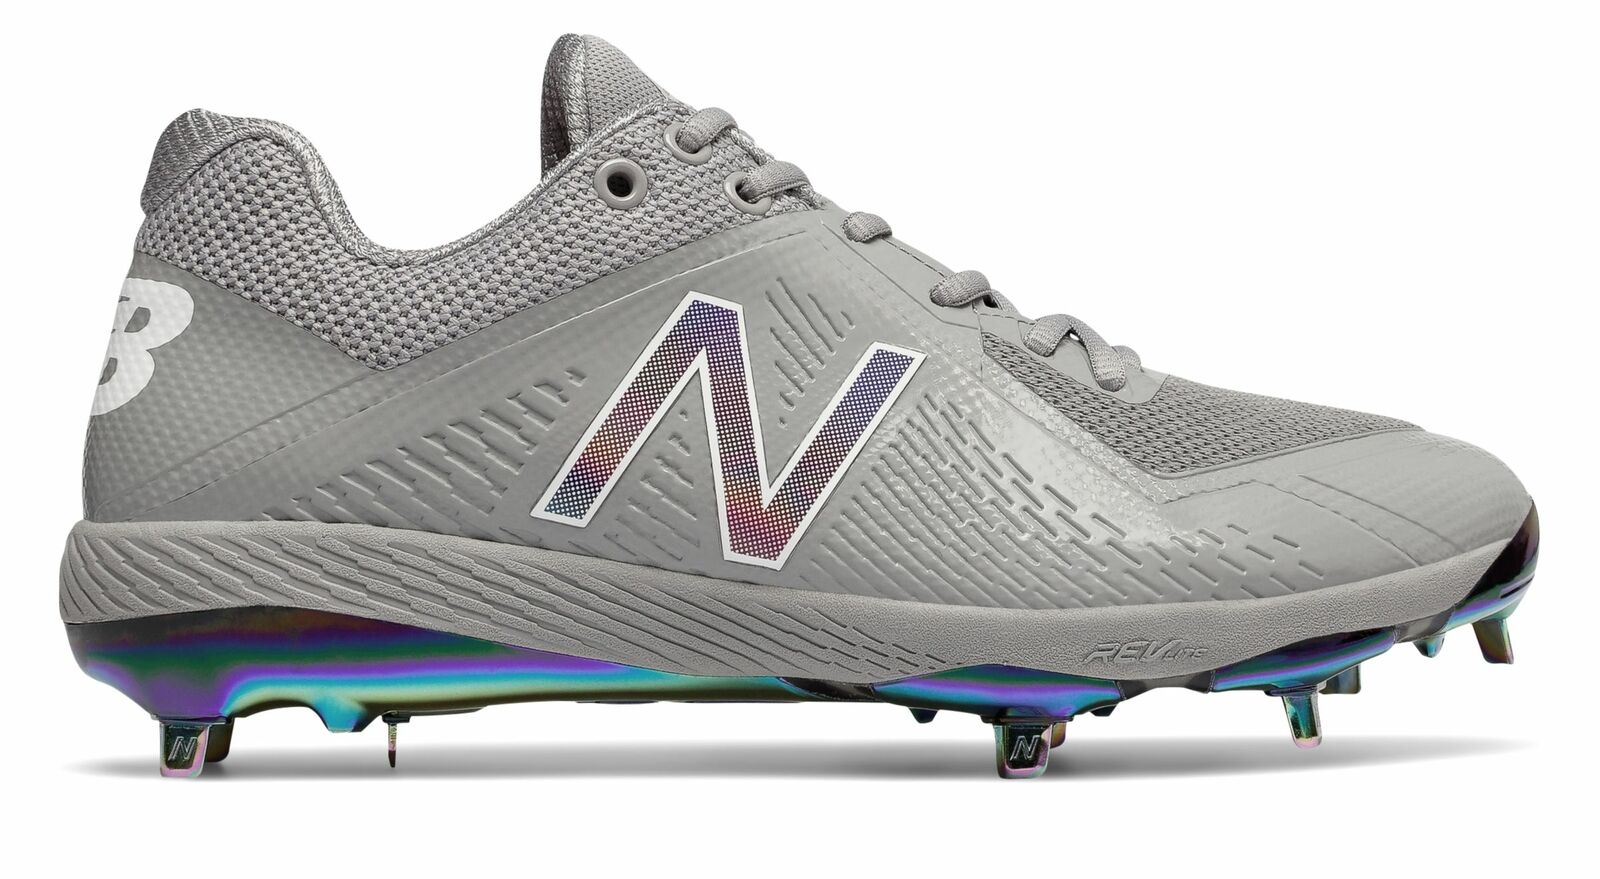 New Balance Low-Cut 4040V4 Metal Baseball Cleat Adult shoes Grey With White